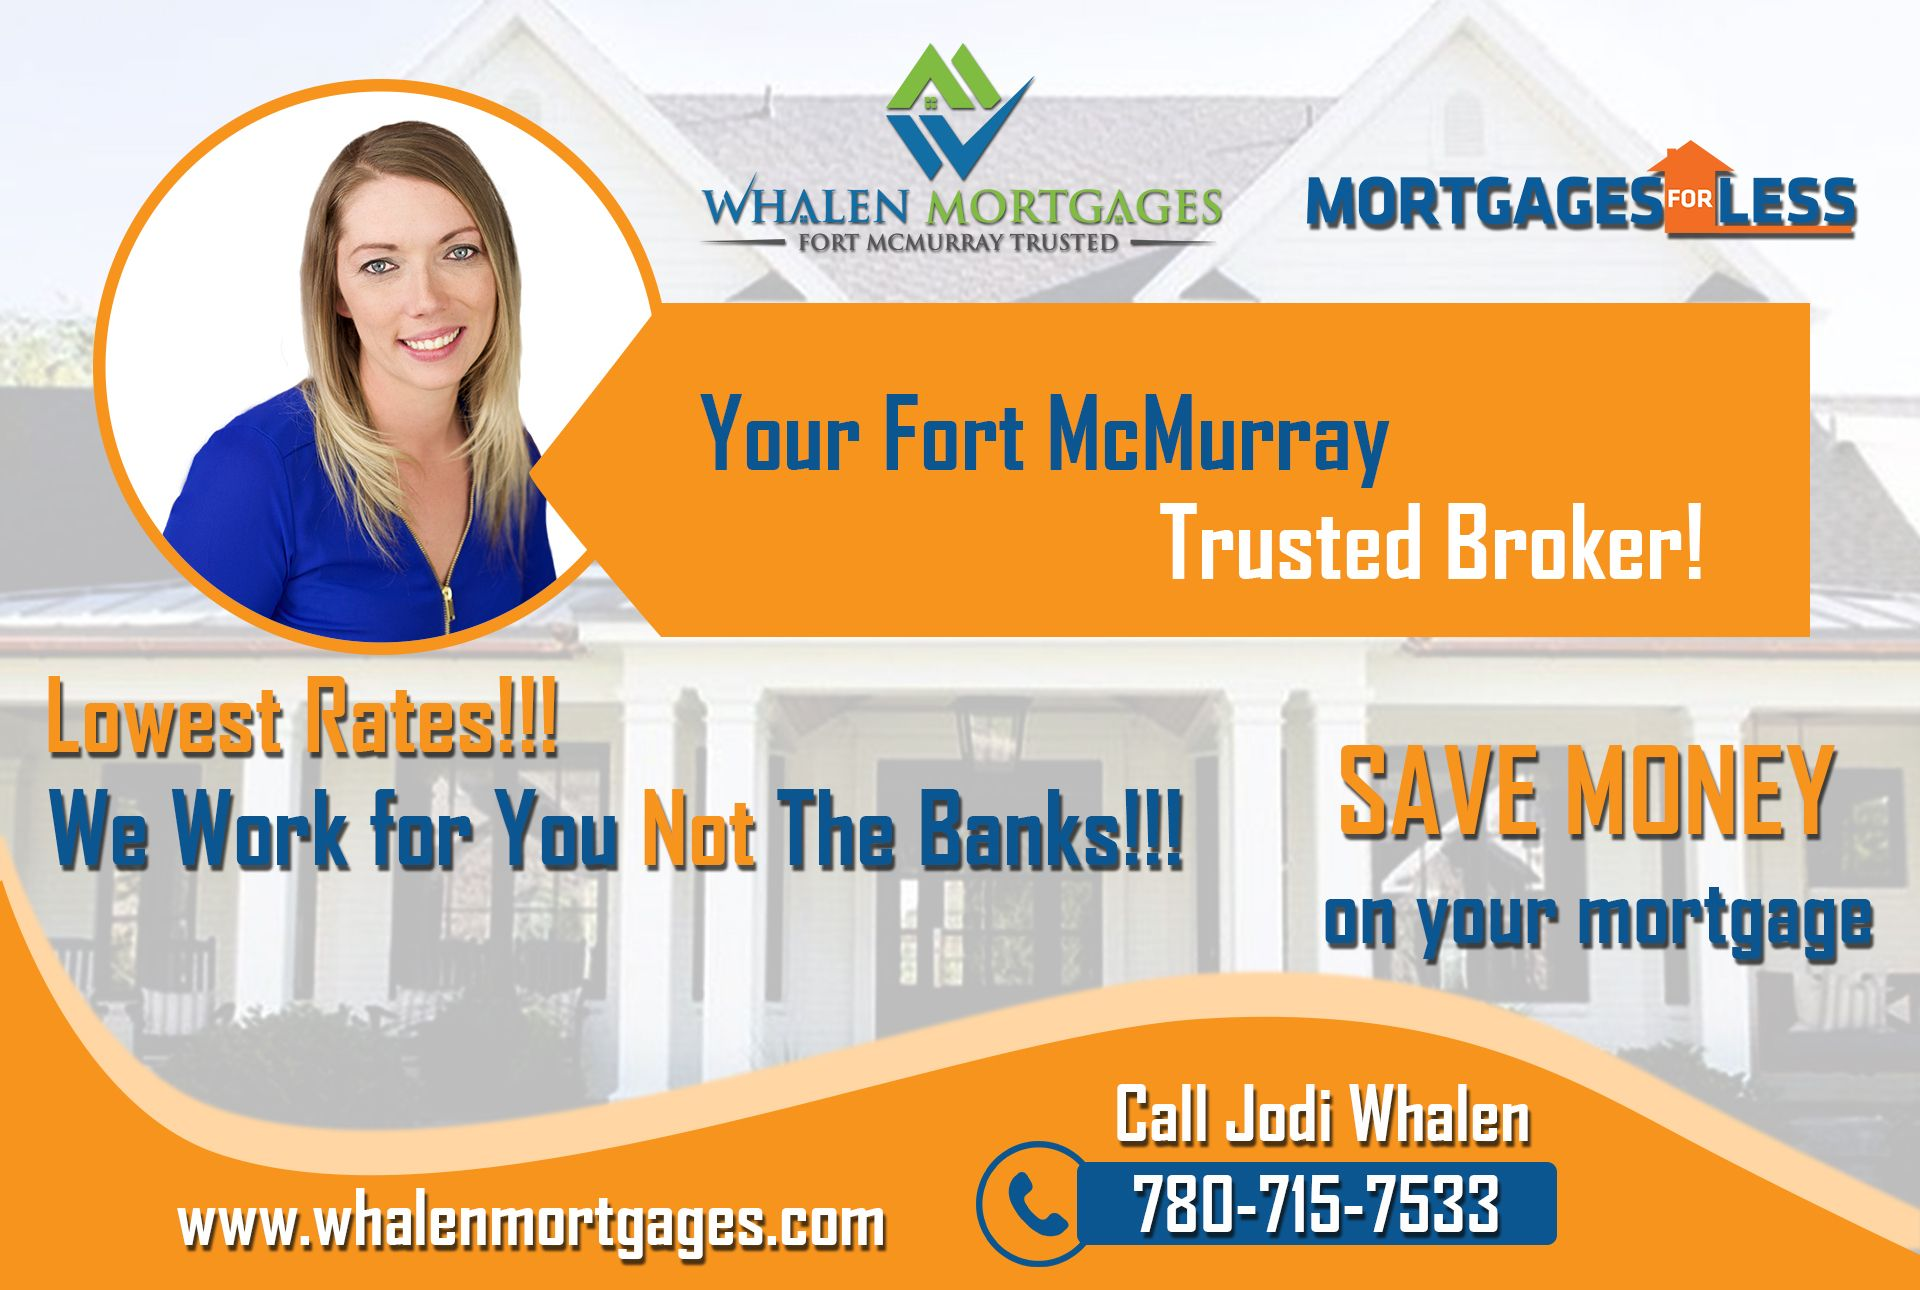 WHALENMORTGAGES.COM  Your #1 local and trusted Mortgage Broker Call today and be approved in only 20 mins  #realestate #broker #ymm #weloveymm #housing #luxury #investing #investment #trust #local #mortgagebroker